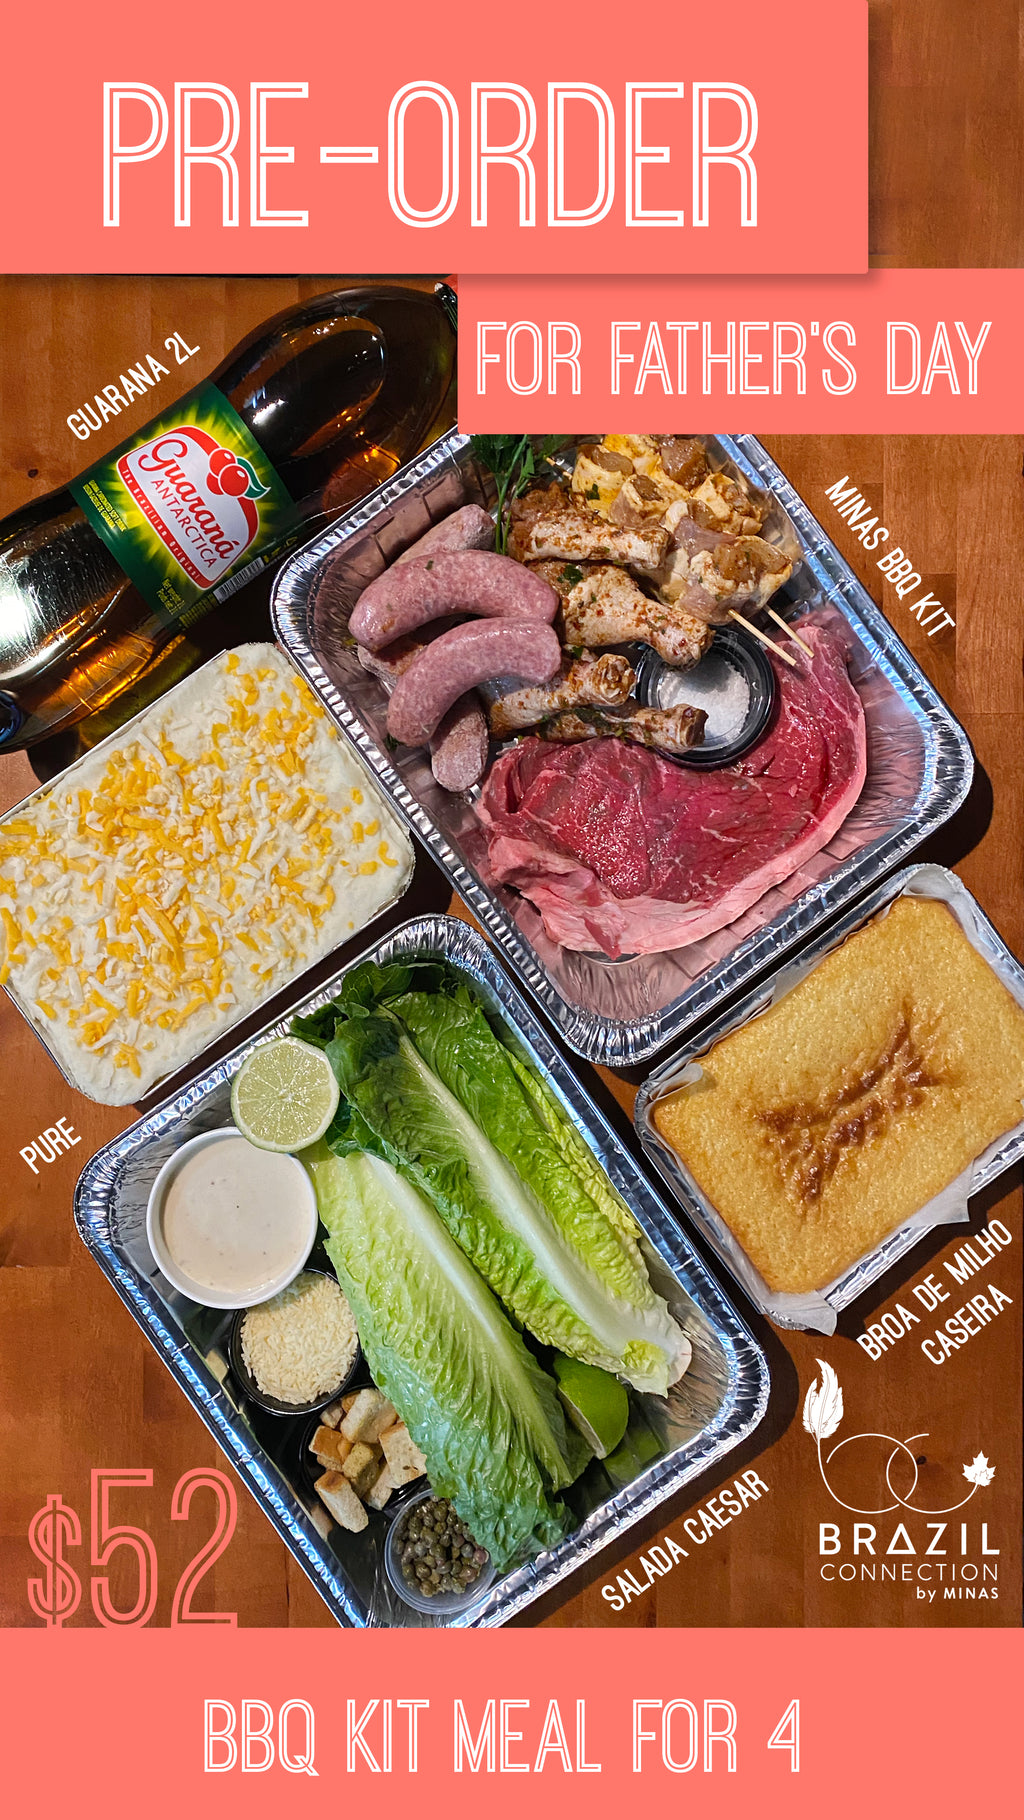 MINAS BBQ KIT - Father's Day Special for 4 people